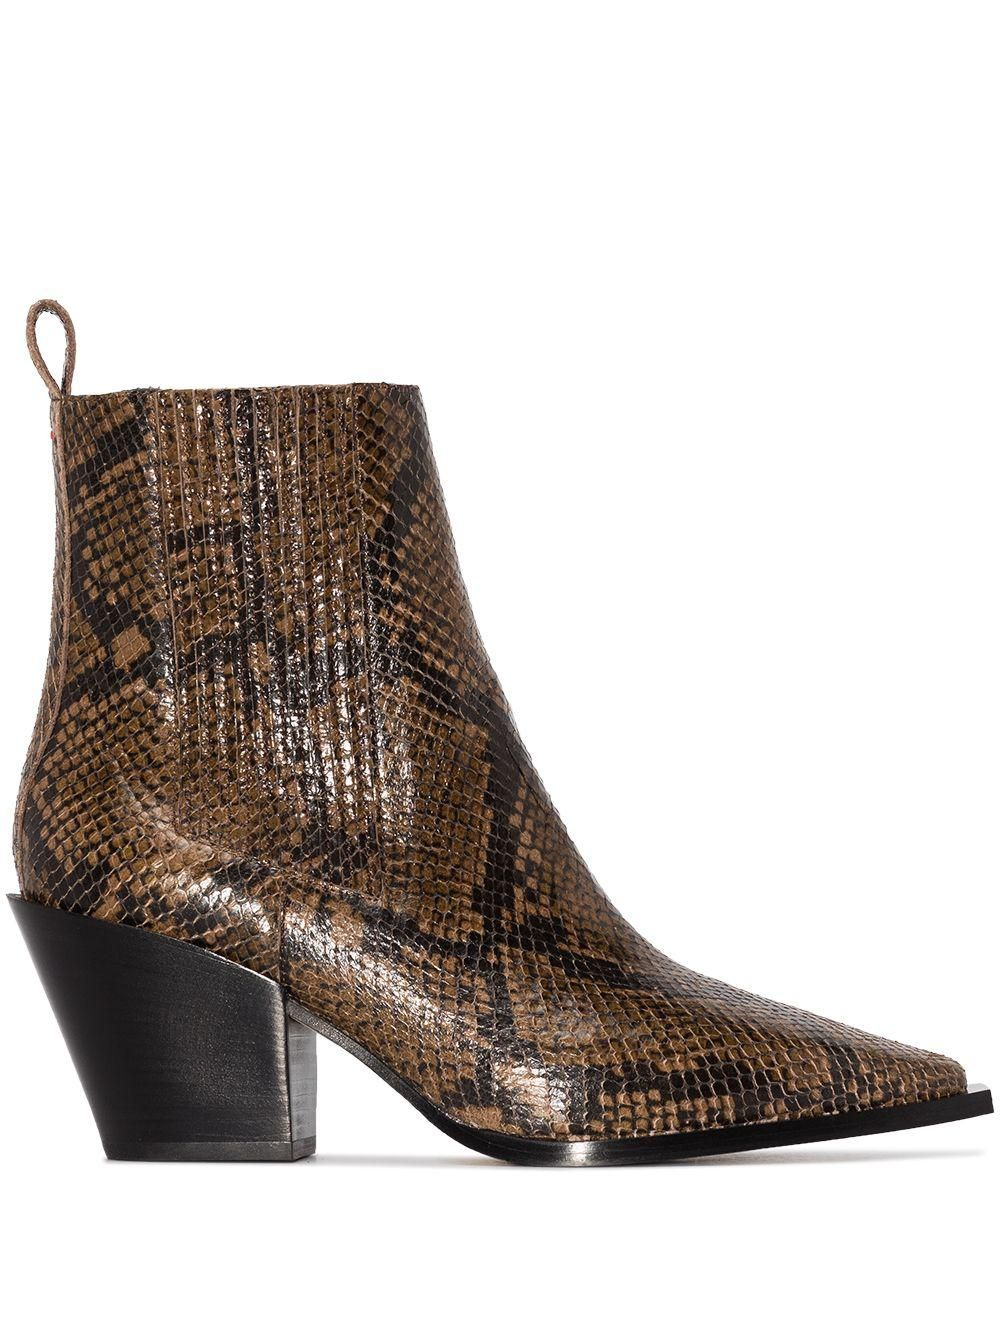 Kate 75mm Snakeskin Ankle Boots